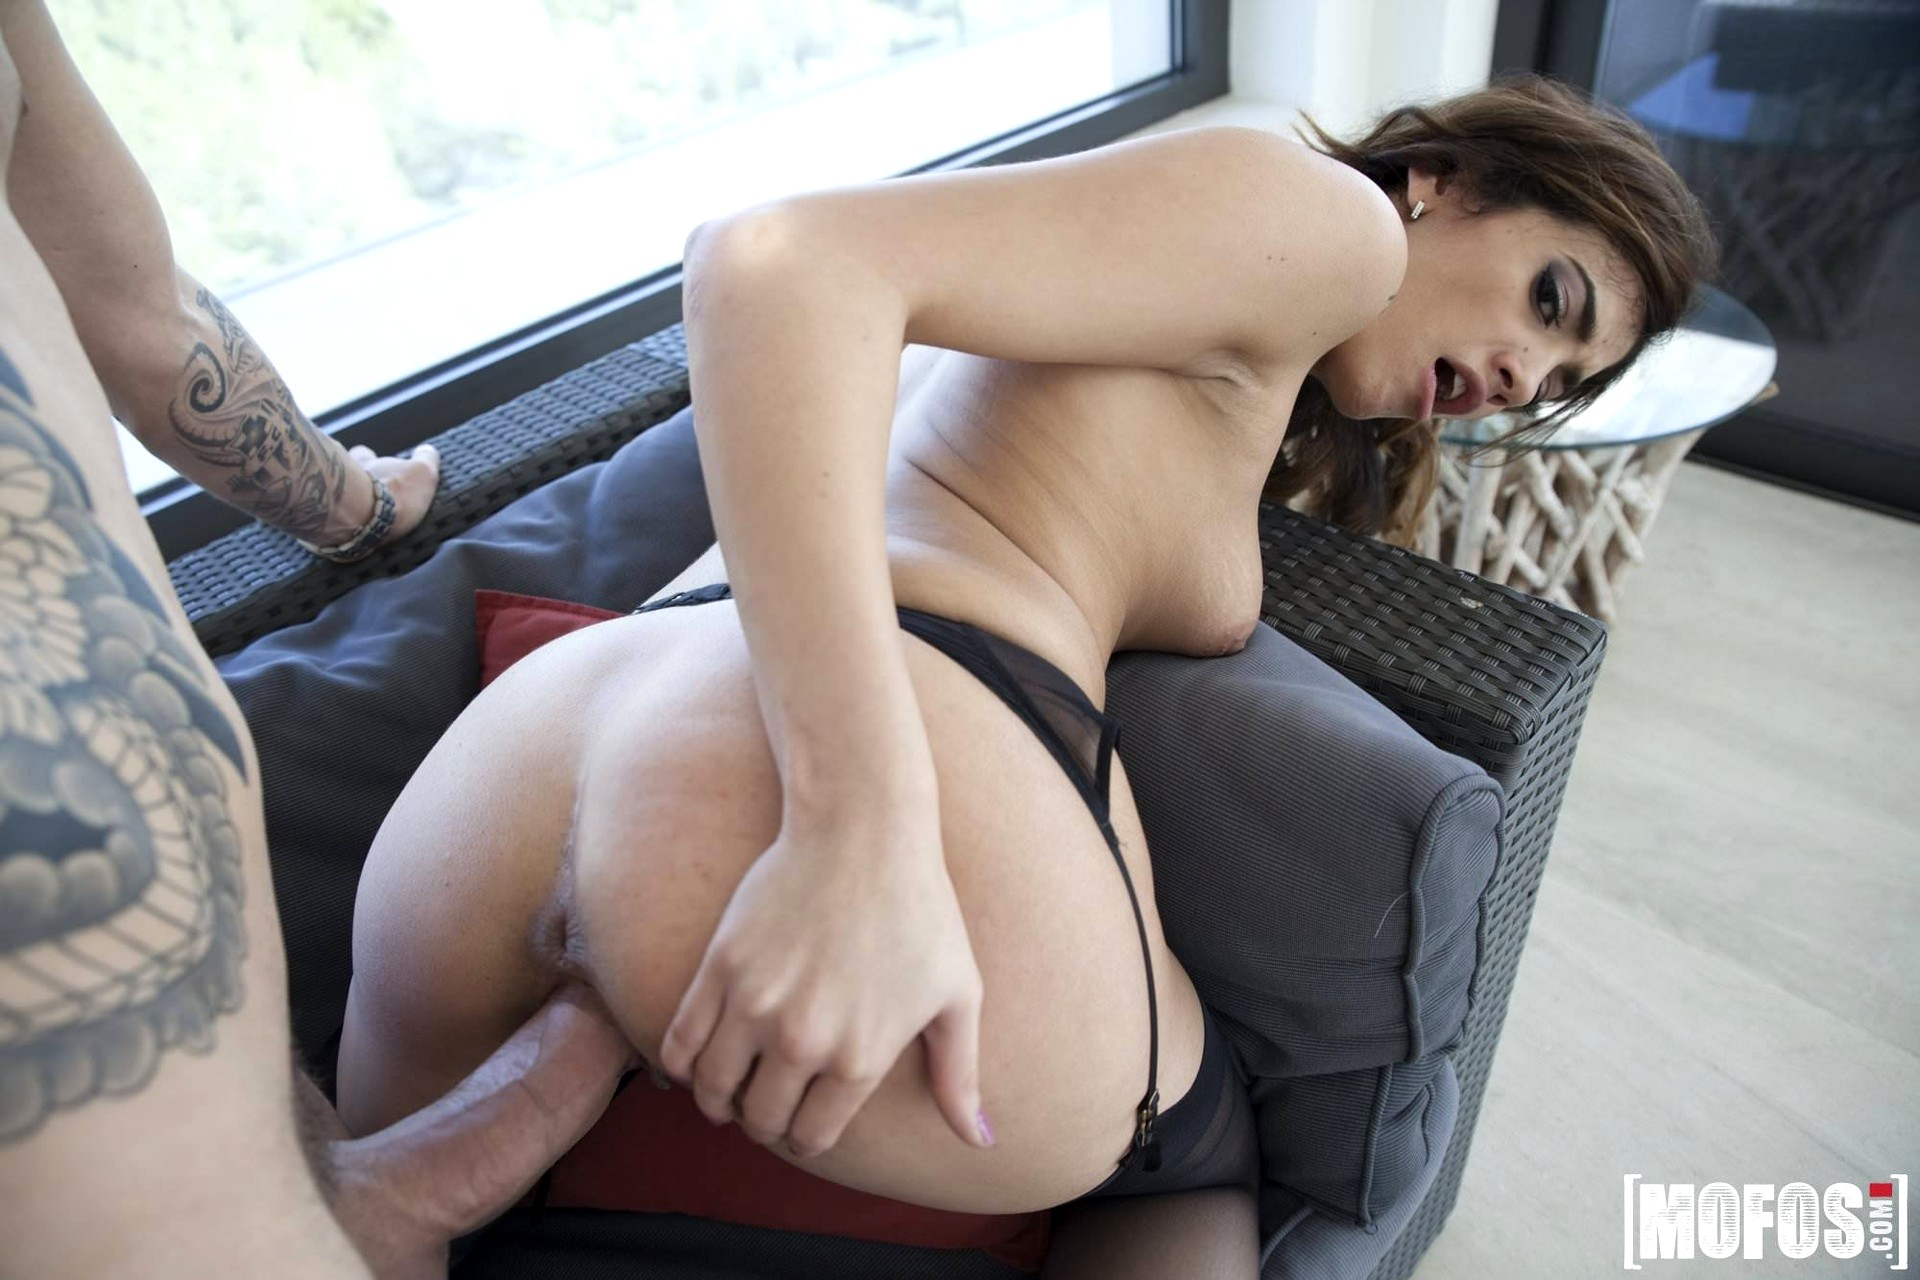 watch sexy latin girls reverse cowgirl